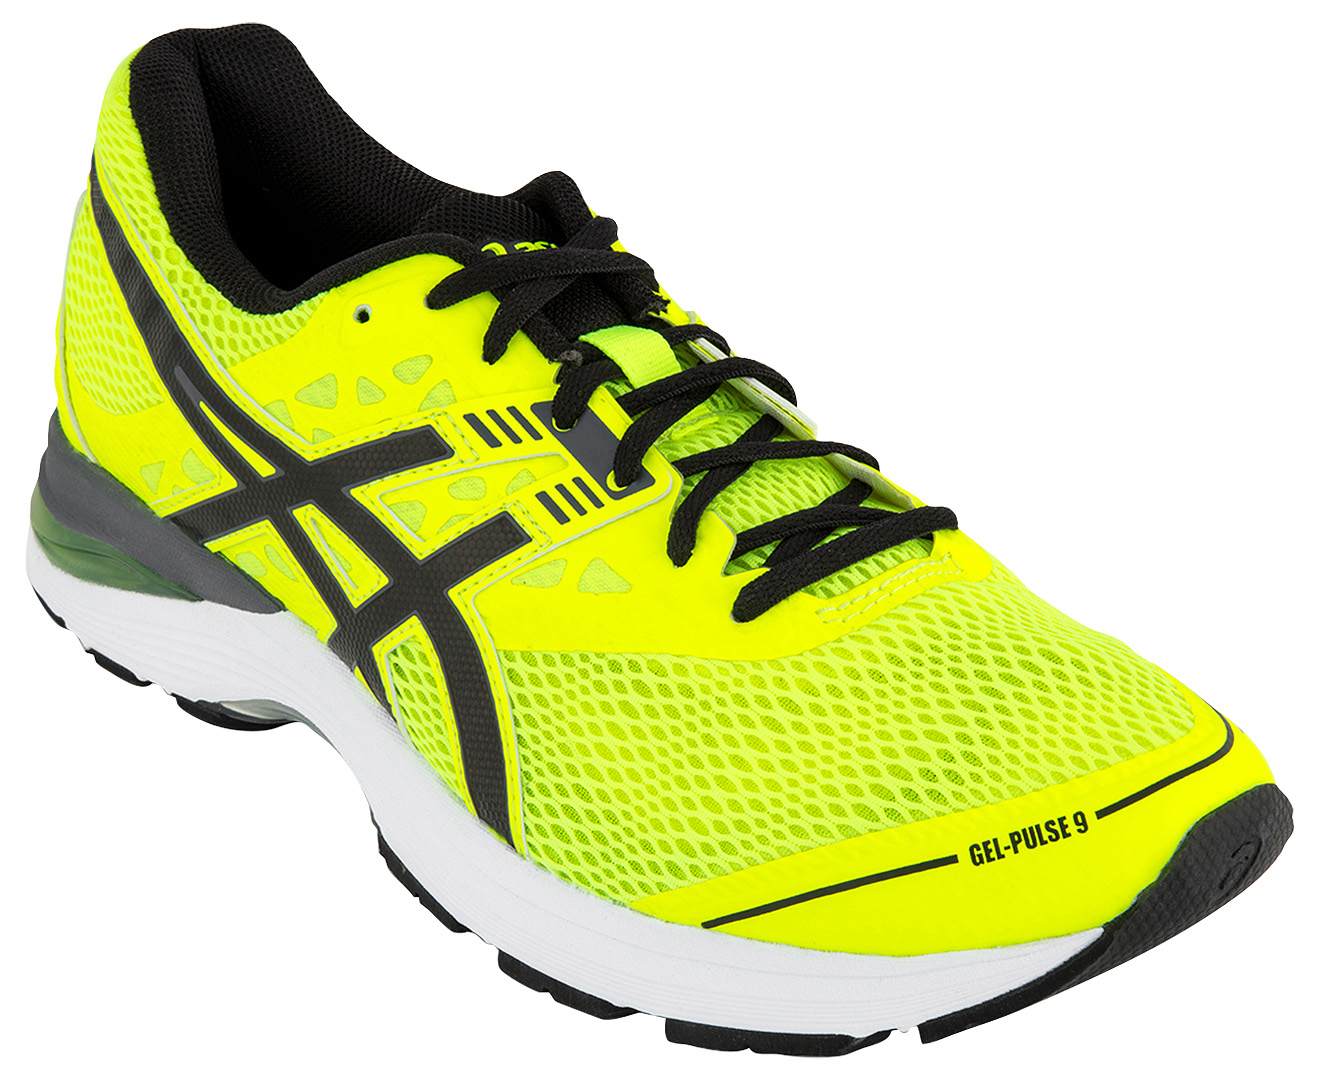 ASICS Men s GEL-Pulse 9 Shoe - Safety Yellow Black Carbon  38ae27b184c92